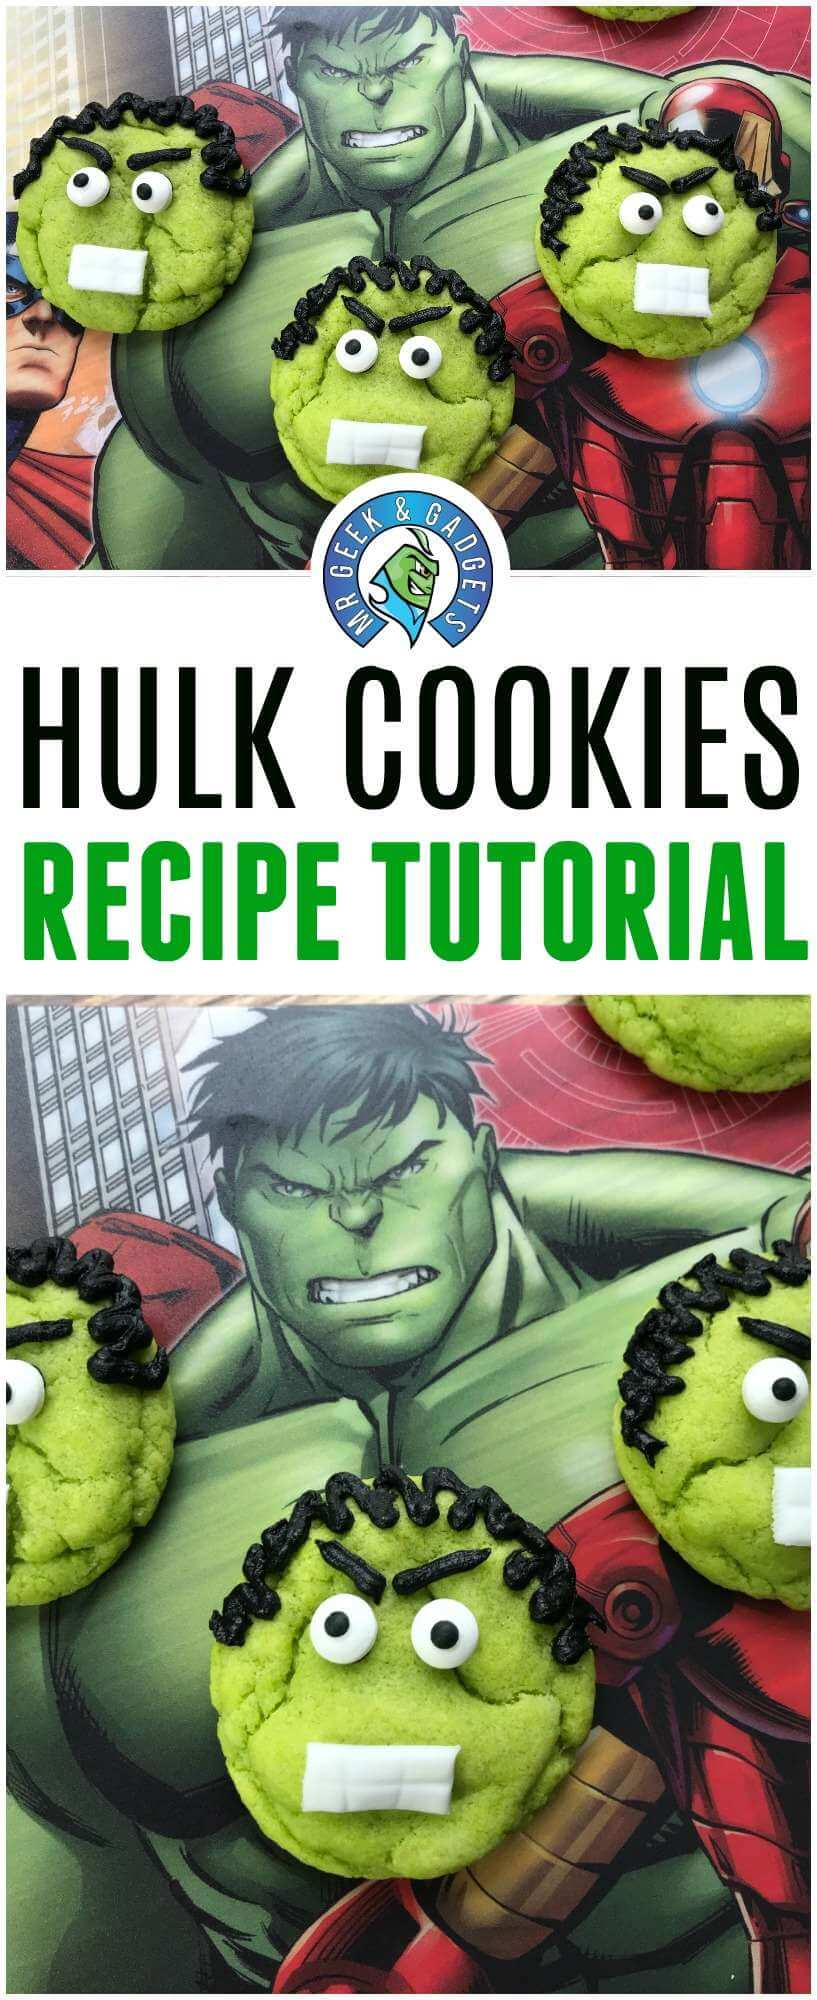 Pin Me - Hulk Cookies Recipe And Tutorial For kids